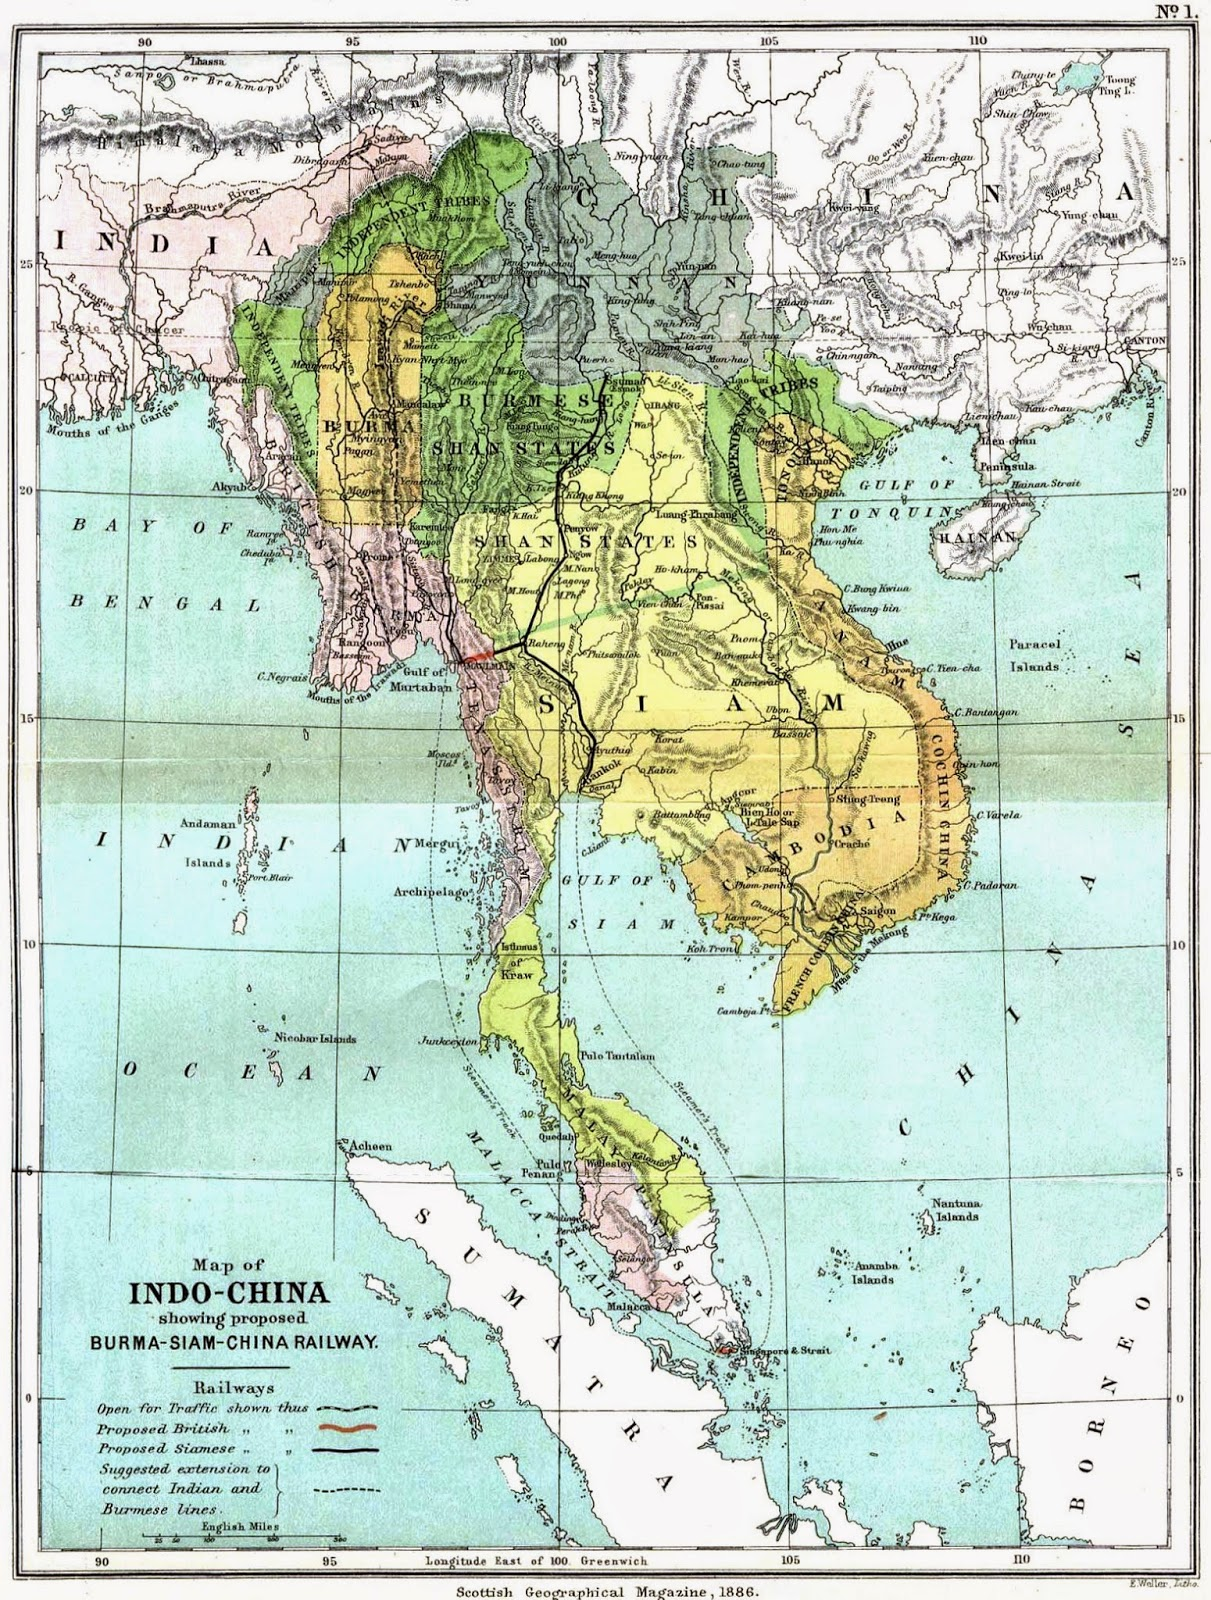 u s forces were fighting vietnamese soldiers during a time when the asian nation was being rapidly colonized by the french in 1861 while french